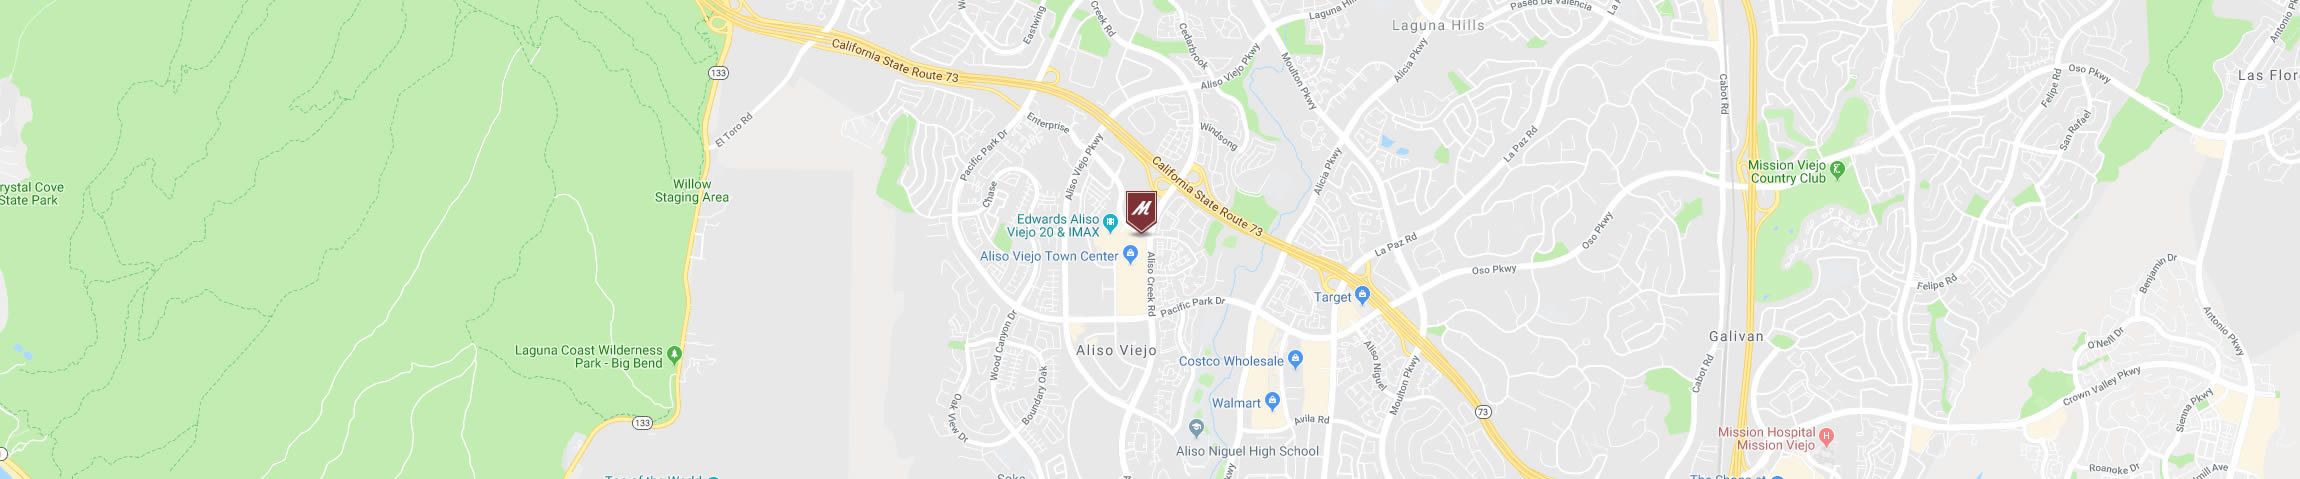 Google Map for the Aliso Viejo Location